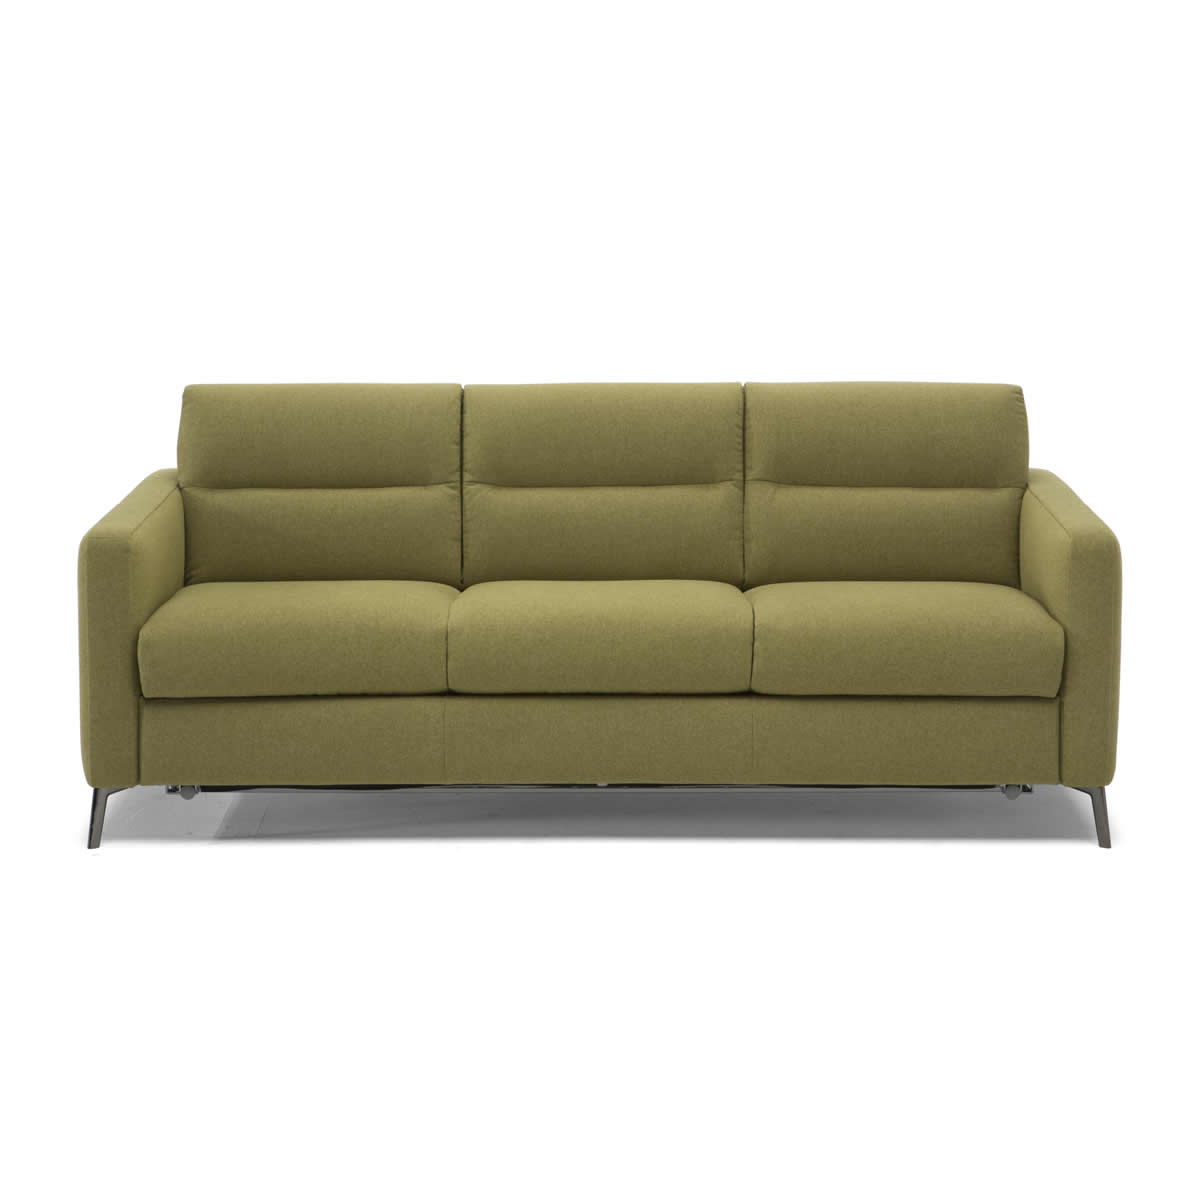 large couch sofa bed table between wall and natuzzi editions zonna